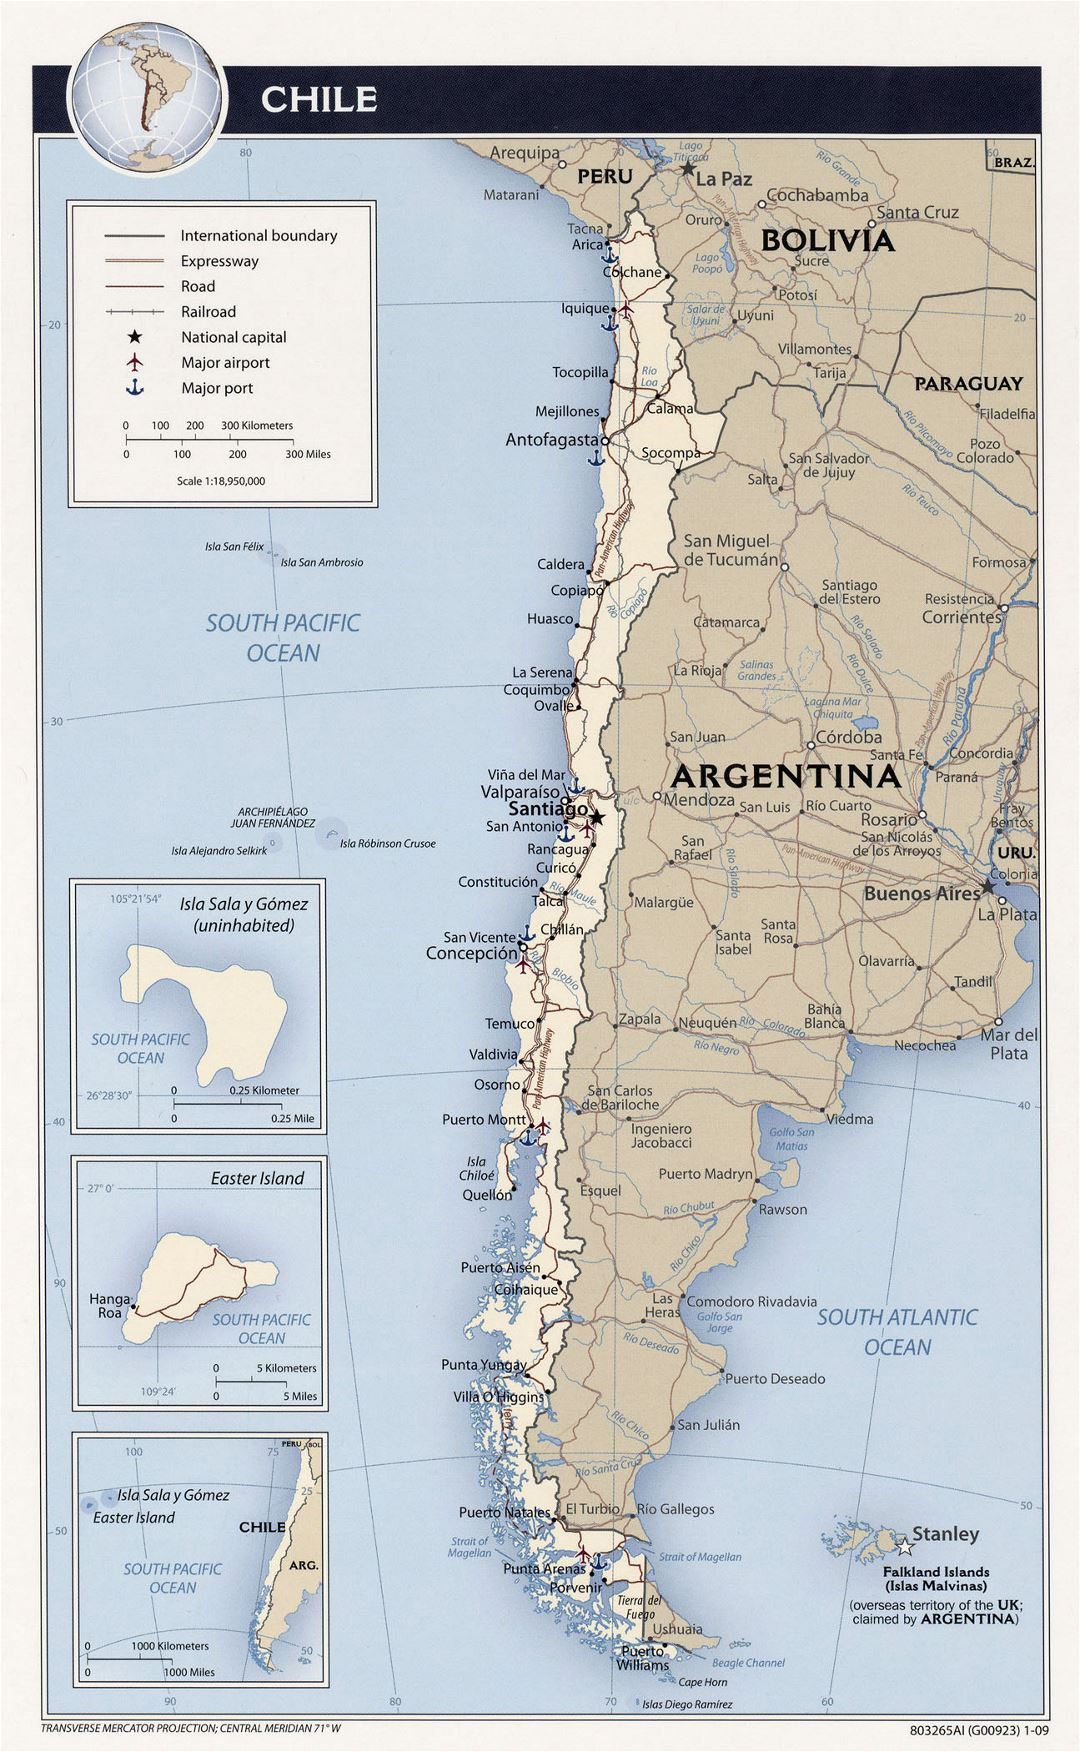 Detailed political map of Chile with roads, cities, airports and sea ports - 2009